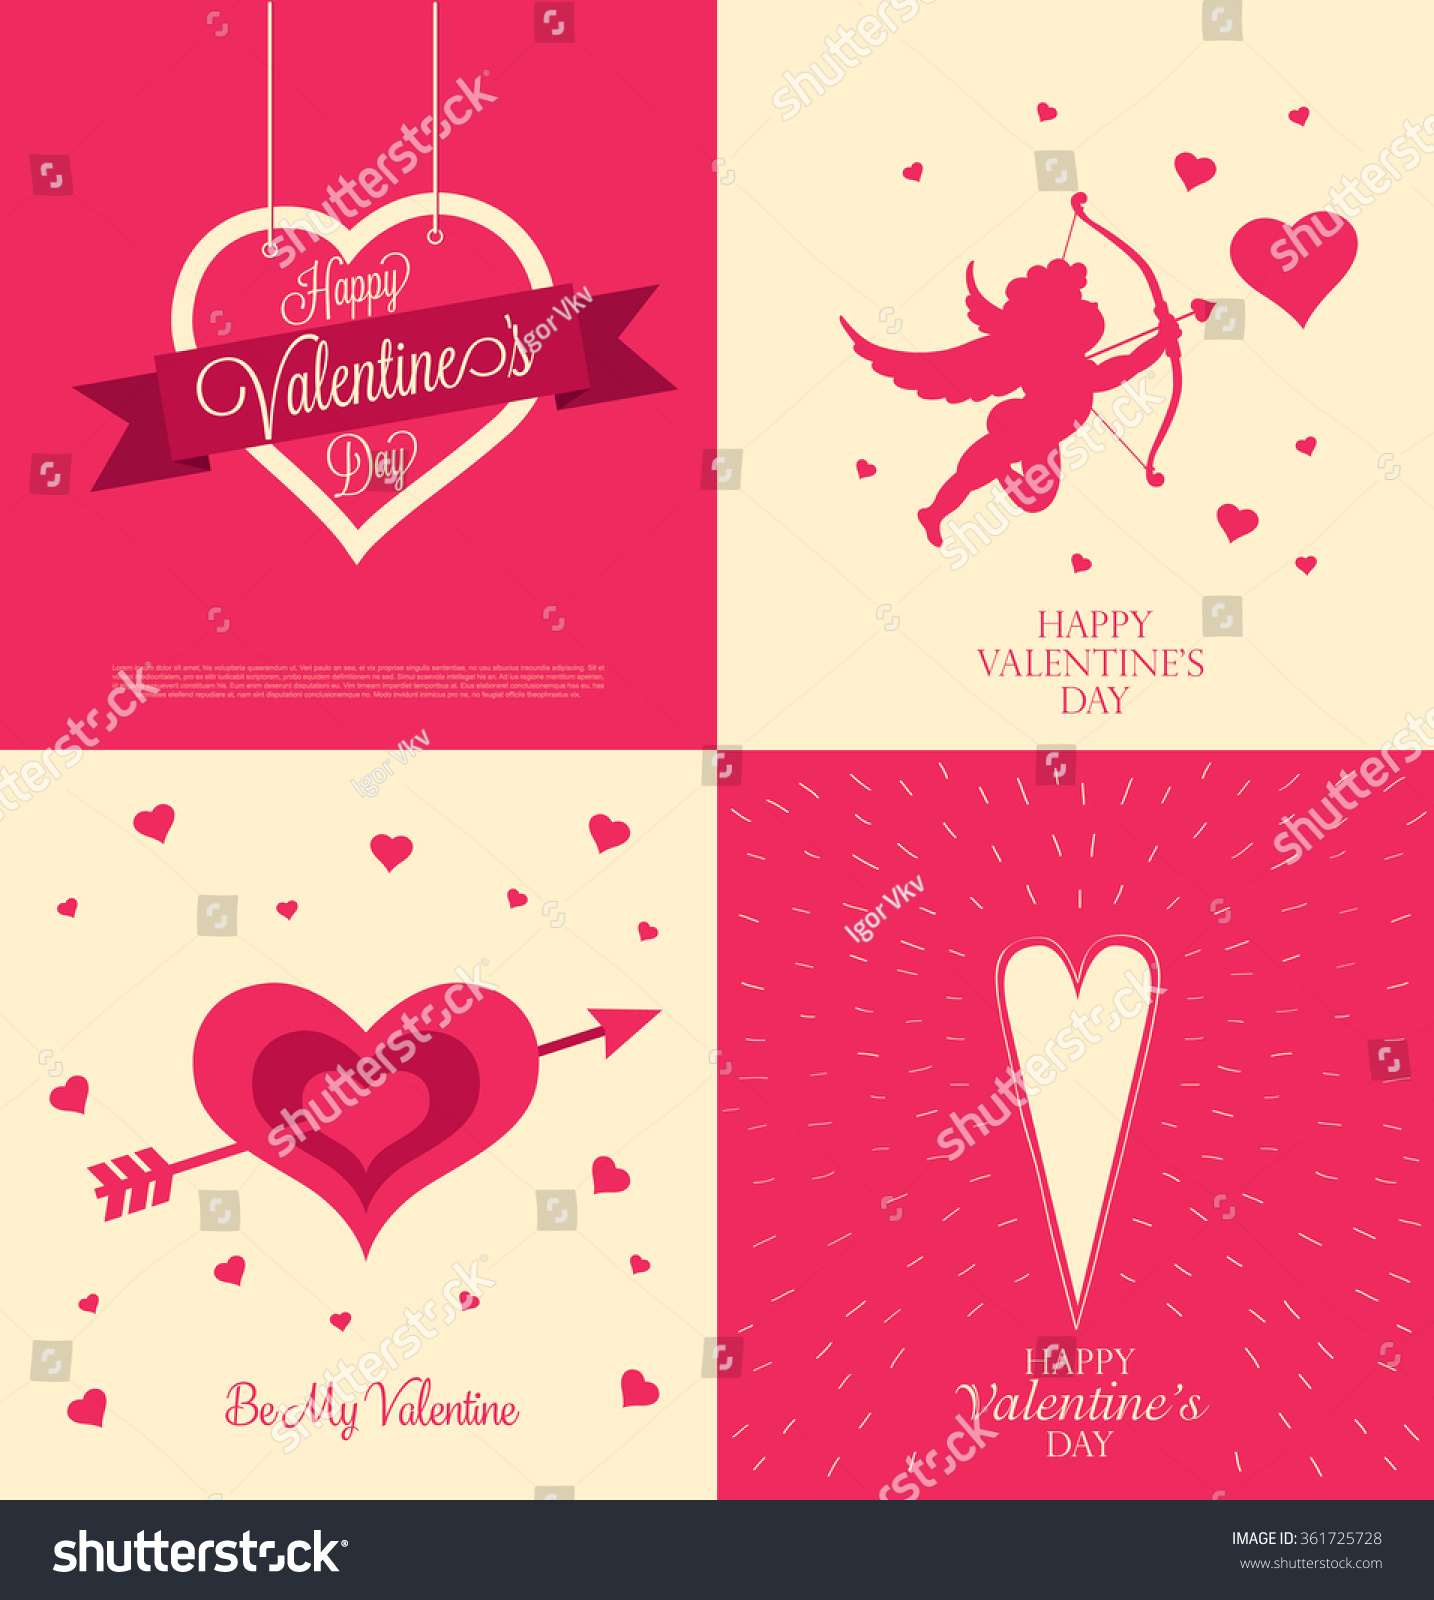 Valentines greeting cards set happy valentines stock vector valentines greeting cards set happy valentines day kristyandbryce Image collections